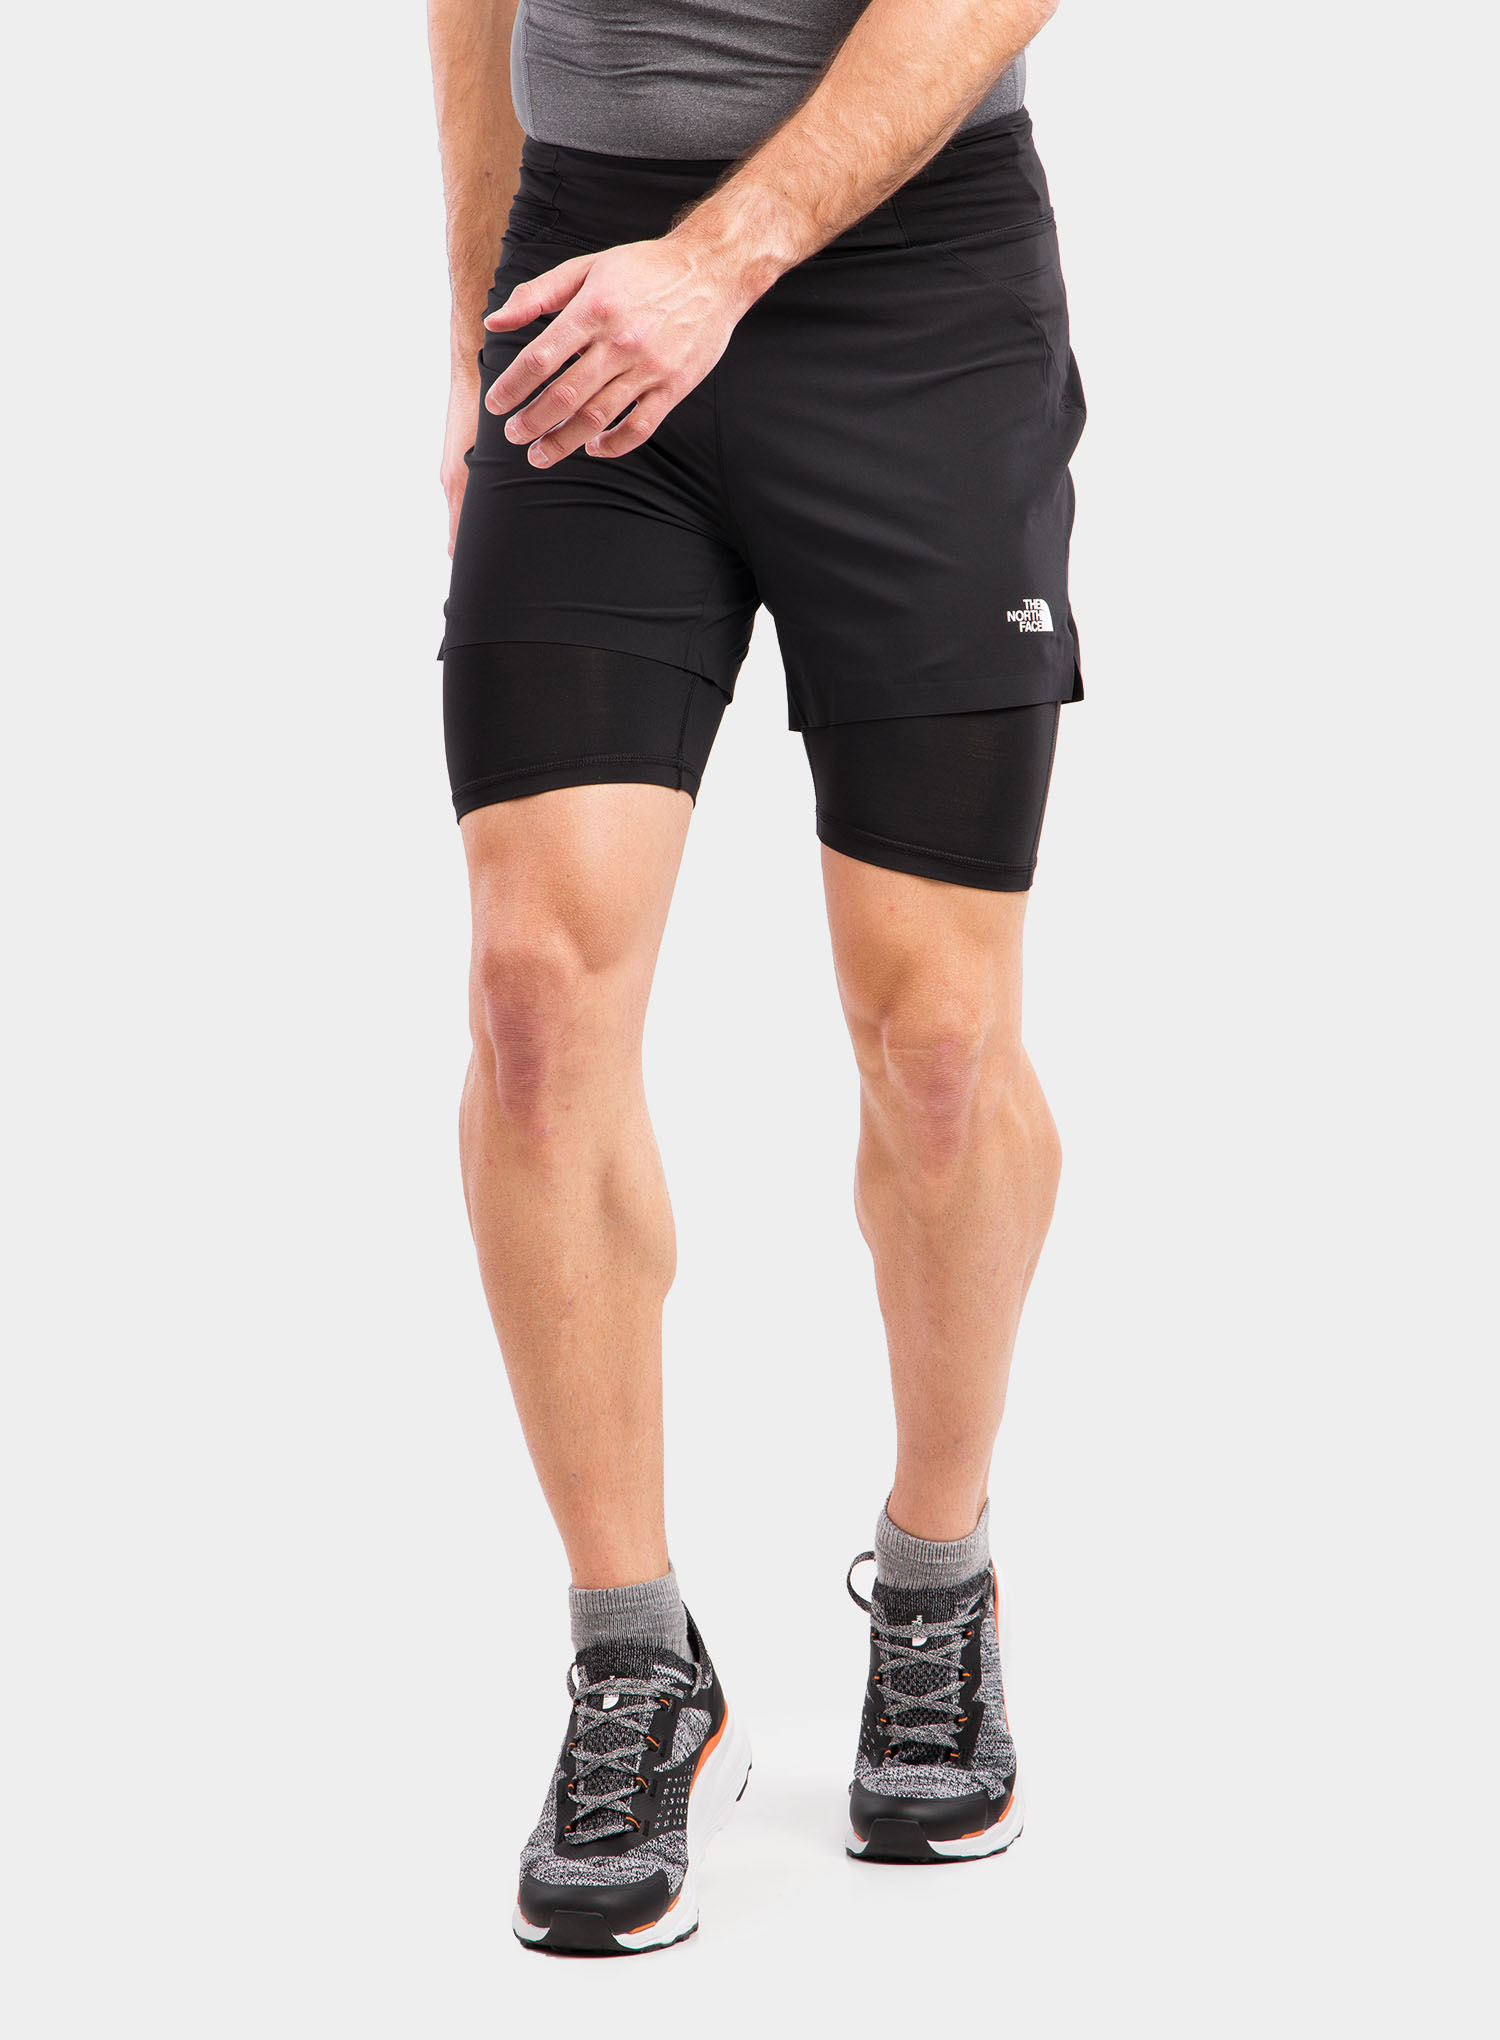 Spodenki The North Face Circadian Comp Lined Short - black - zdjęcie nr. 5